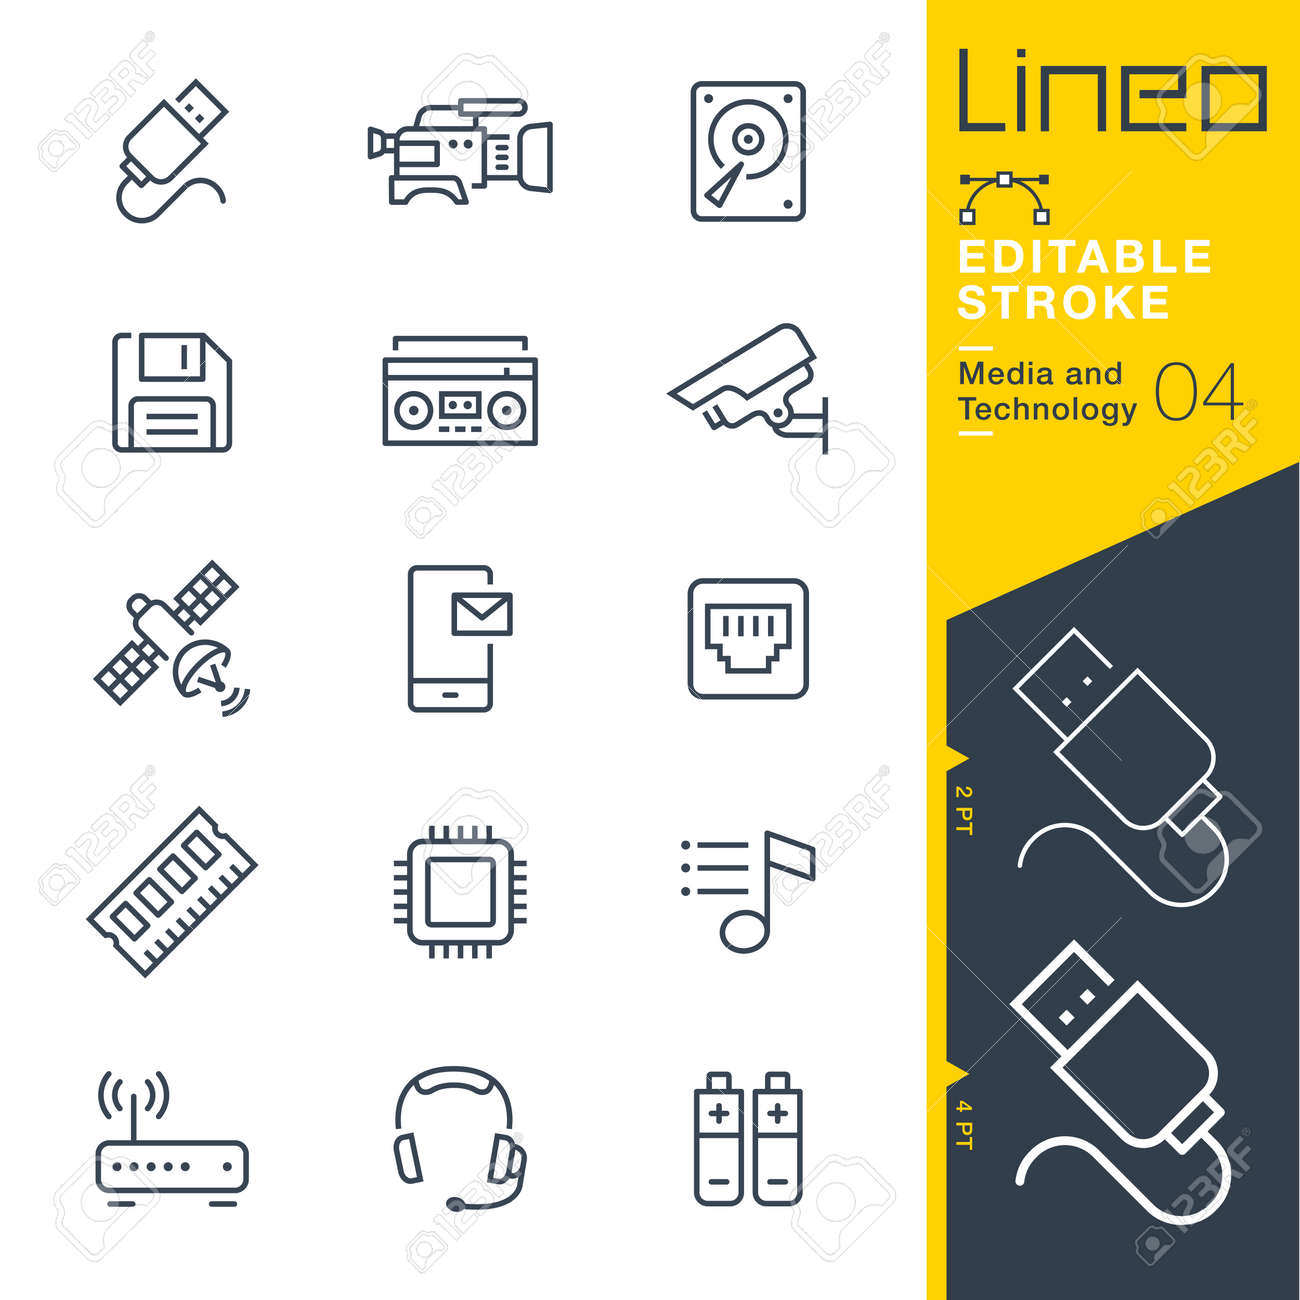 Lineo Editable Stroke - Media and Technology line icon Vector Icons - Adjust stroke weight - Change to any color - 84548940